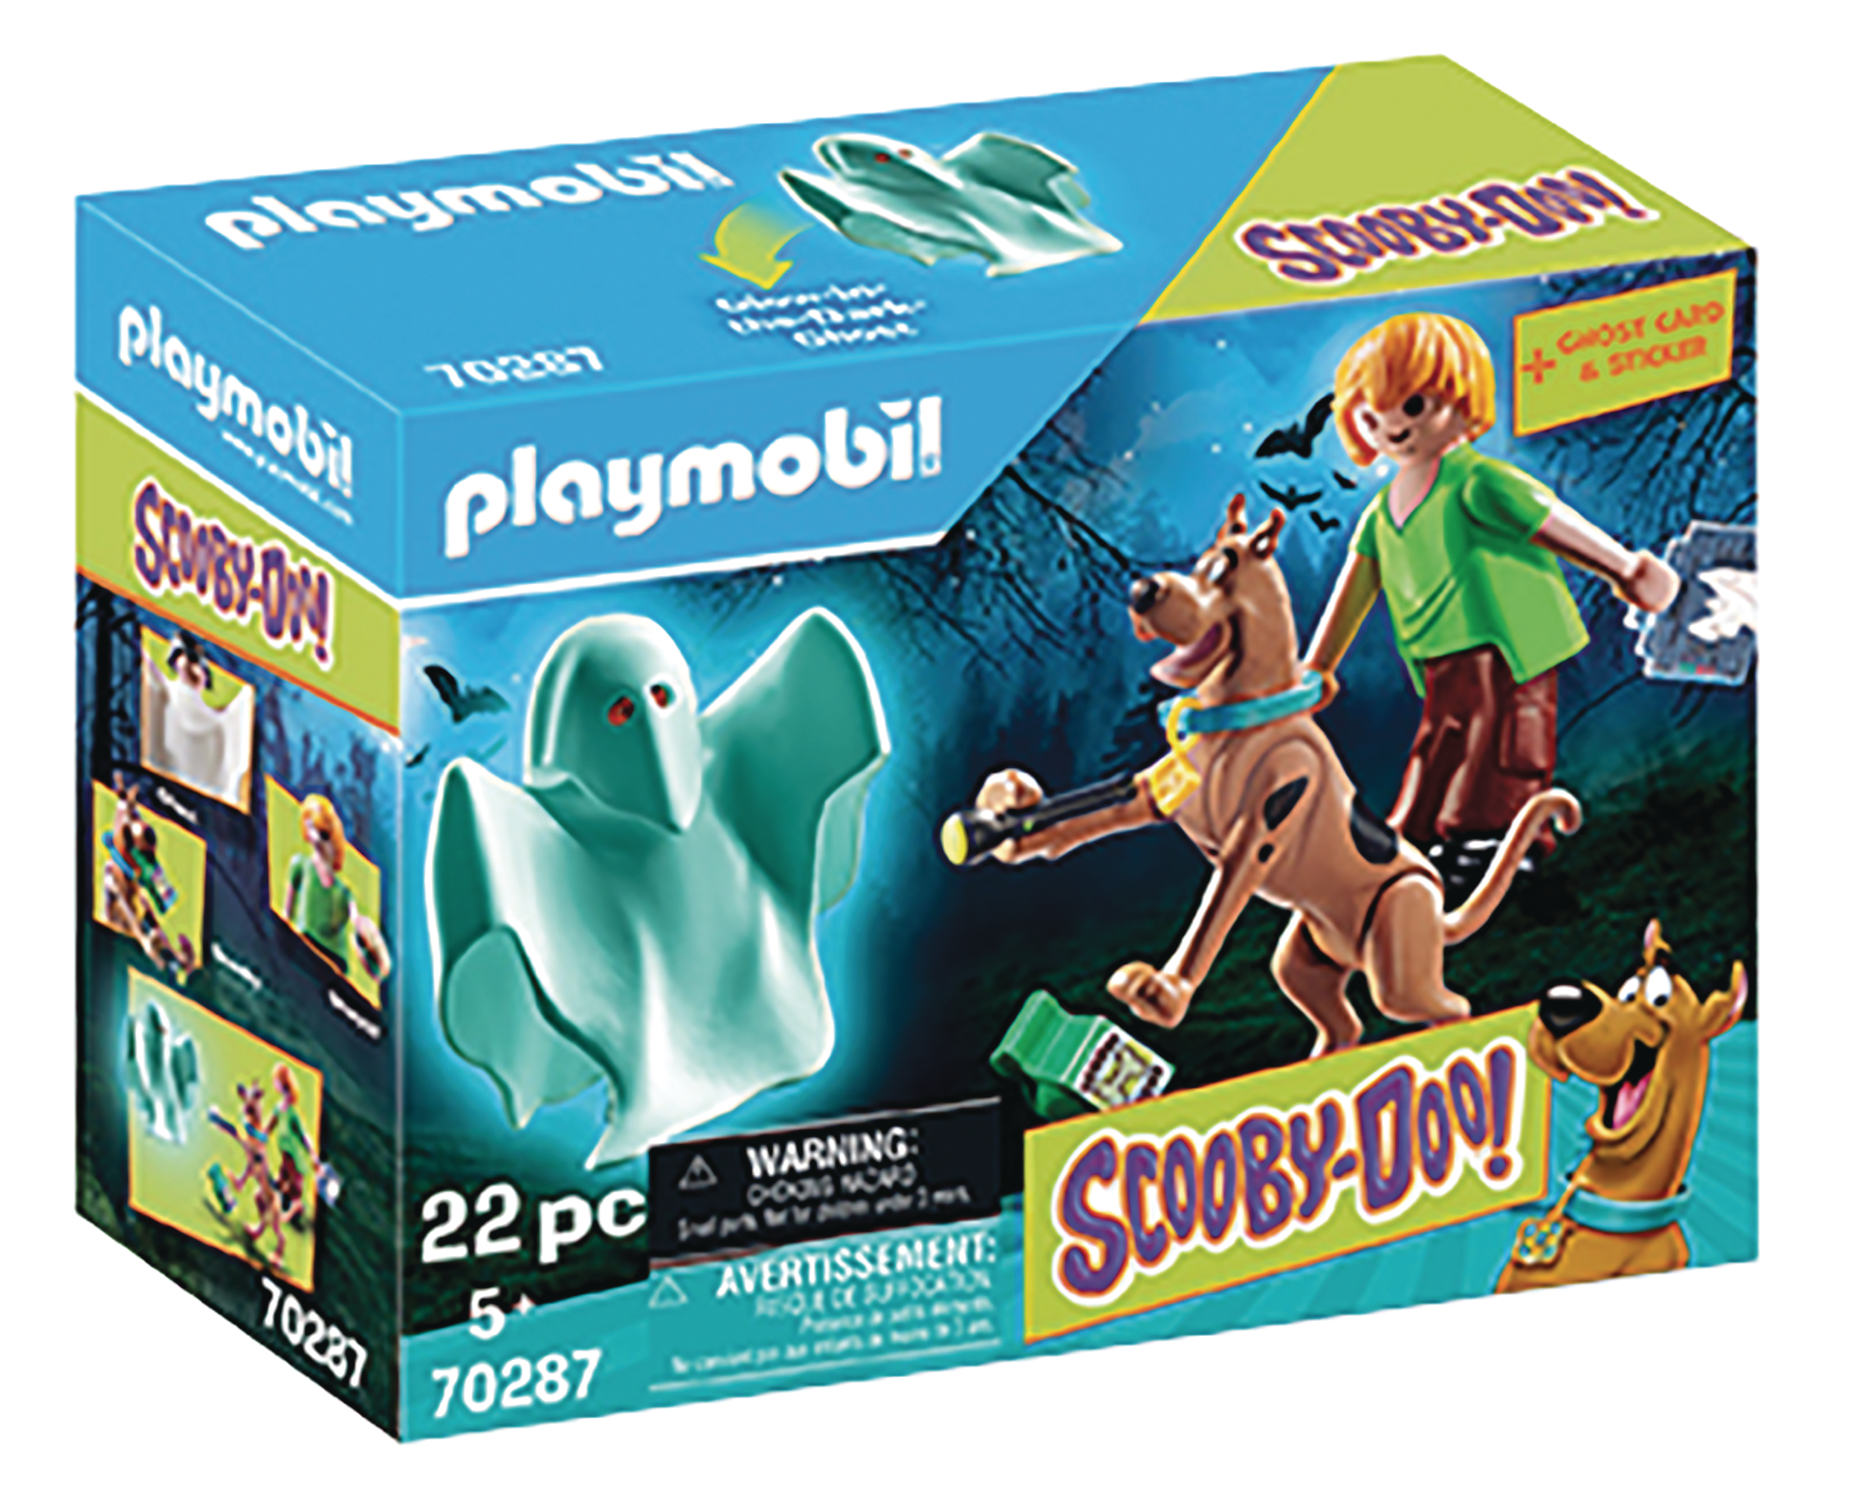 PLAYMOBIL SCOOBY DOO SCOOBY & SHAGGY W/GHOST 2PK SET  (